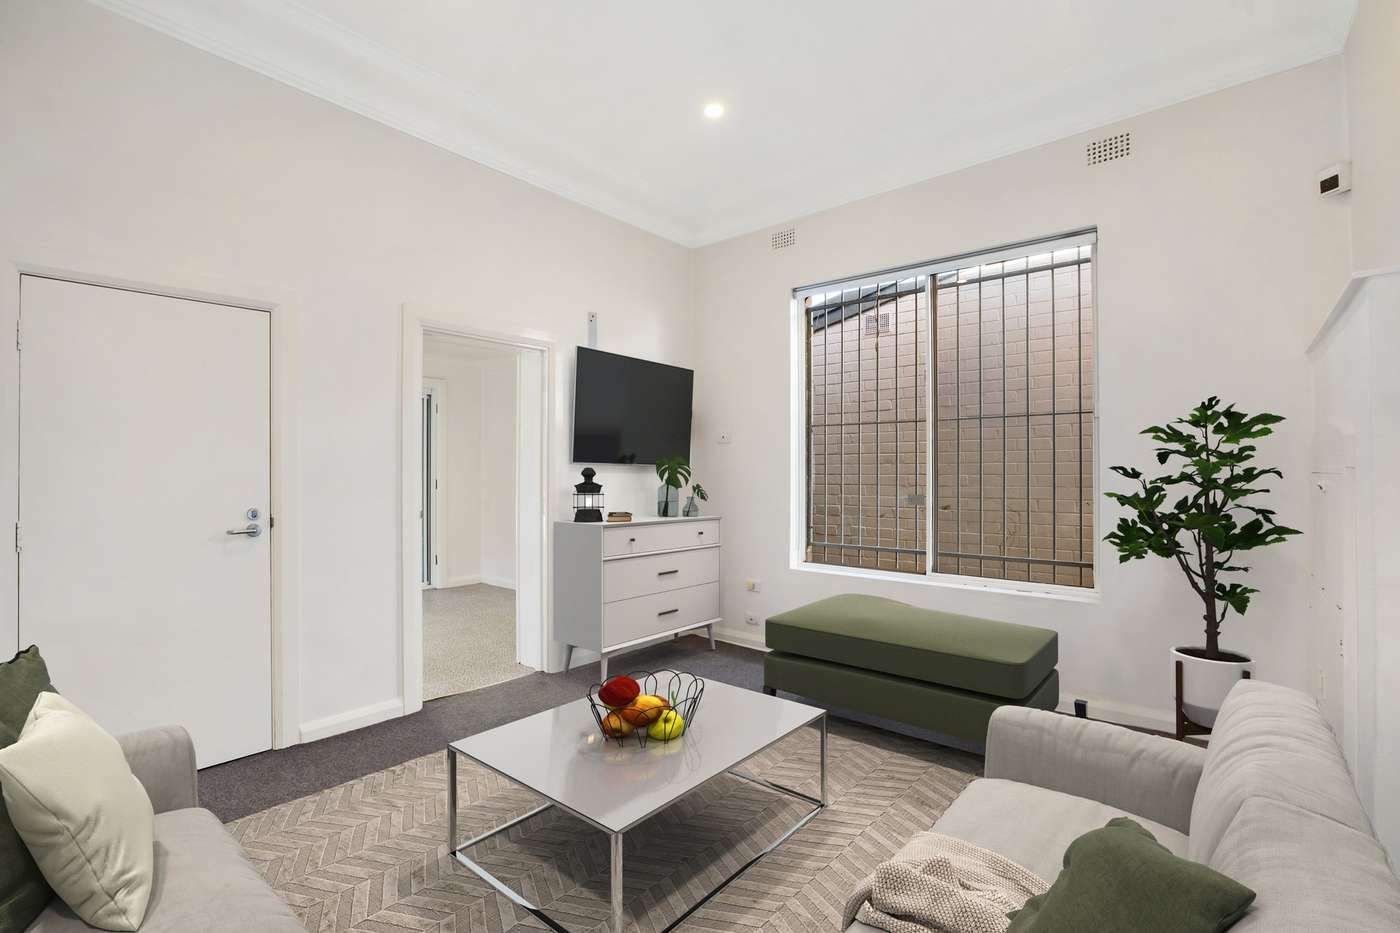 Main view of Homely house listing, 17 Jane Street, Randwick, NSW 2031